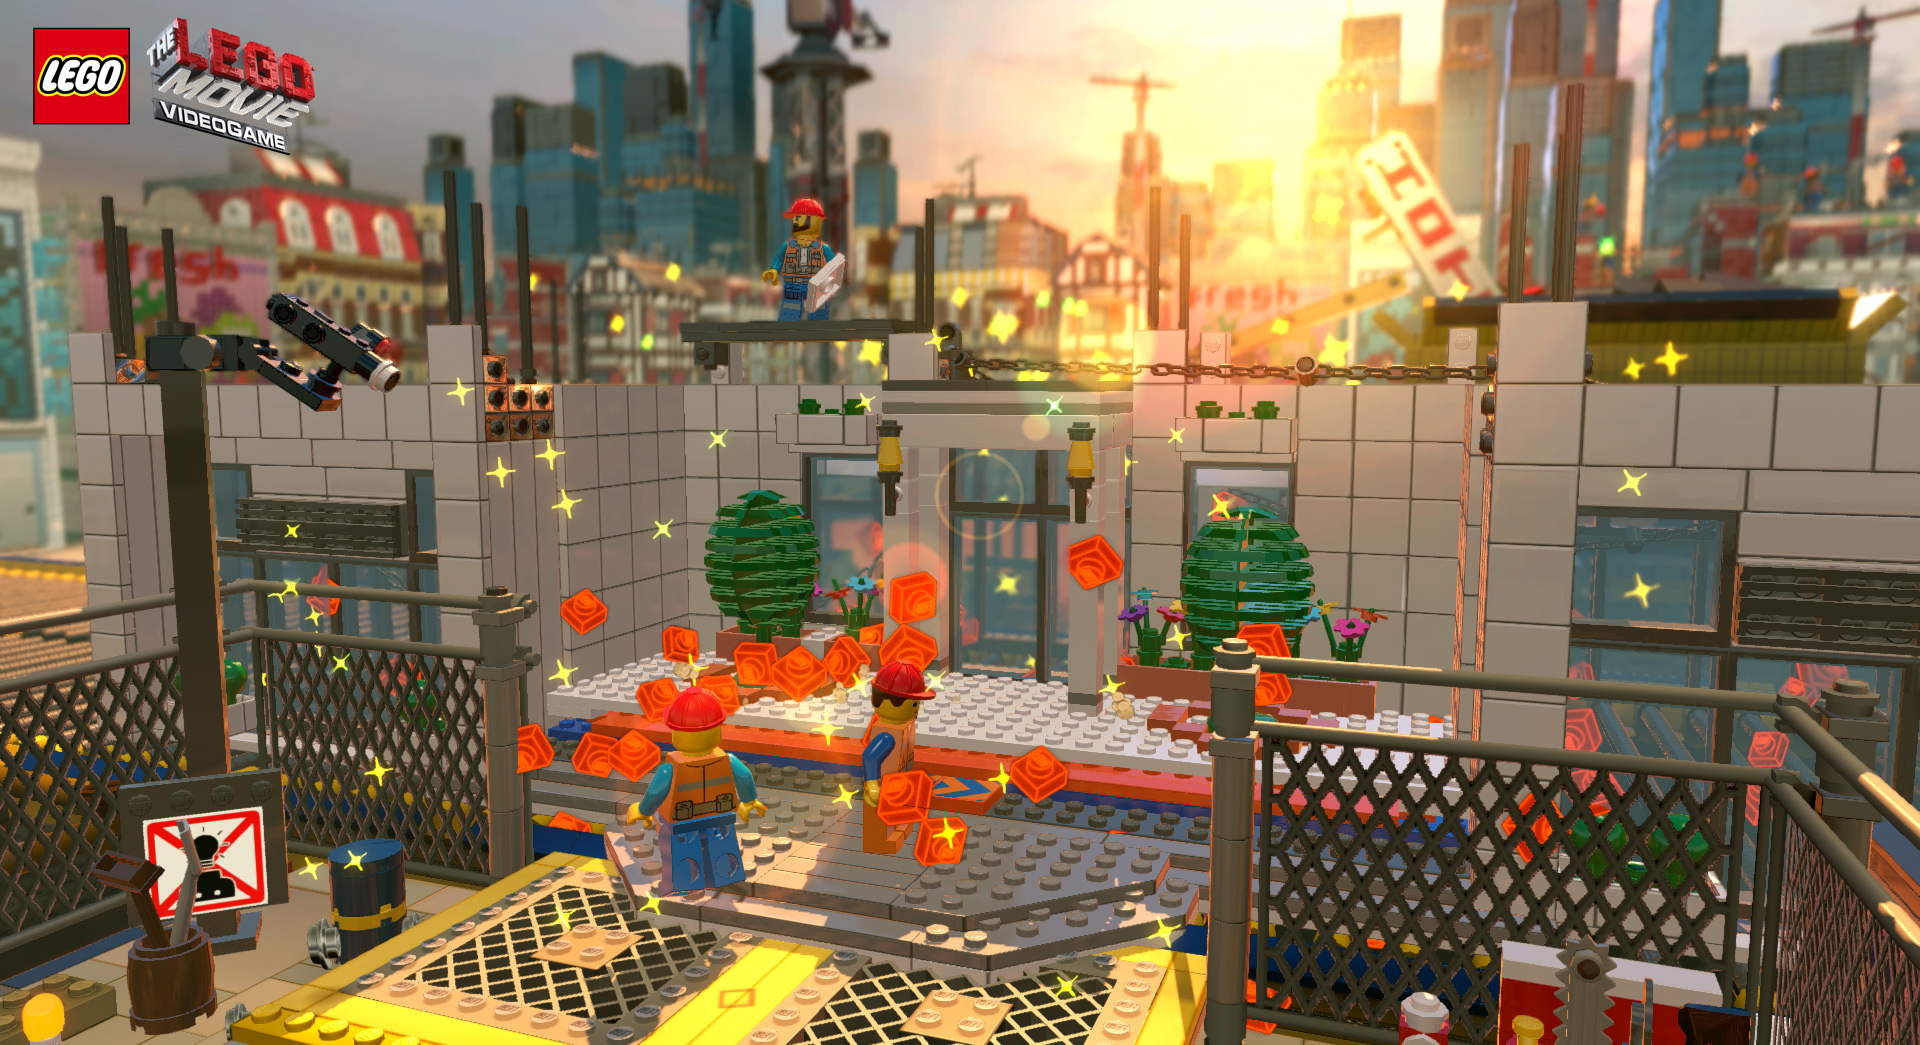 Latest UK Gaming Charts – The Lego Movie Videogame Shoots to Top Spot